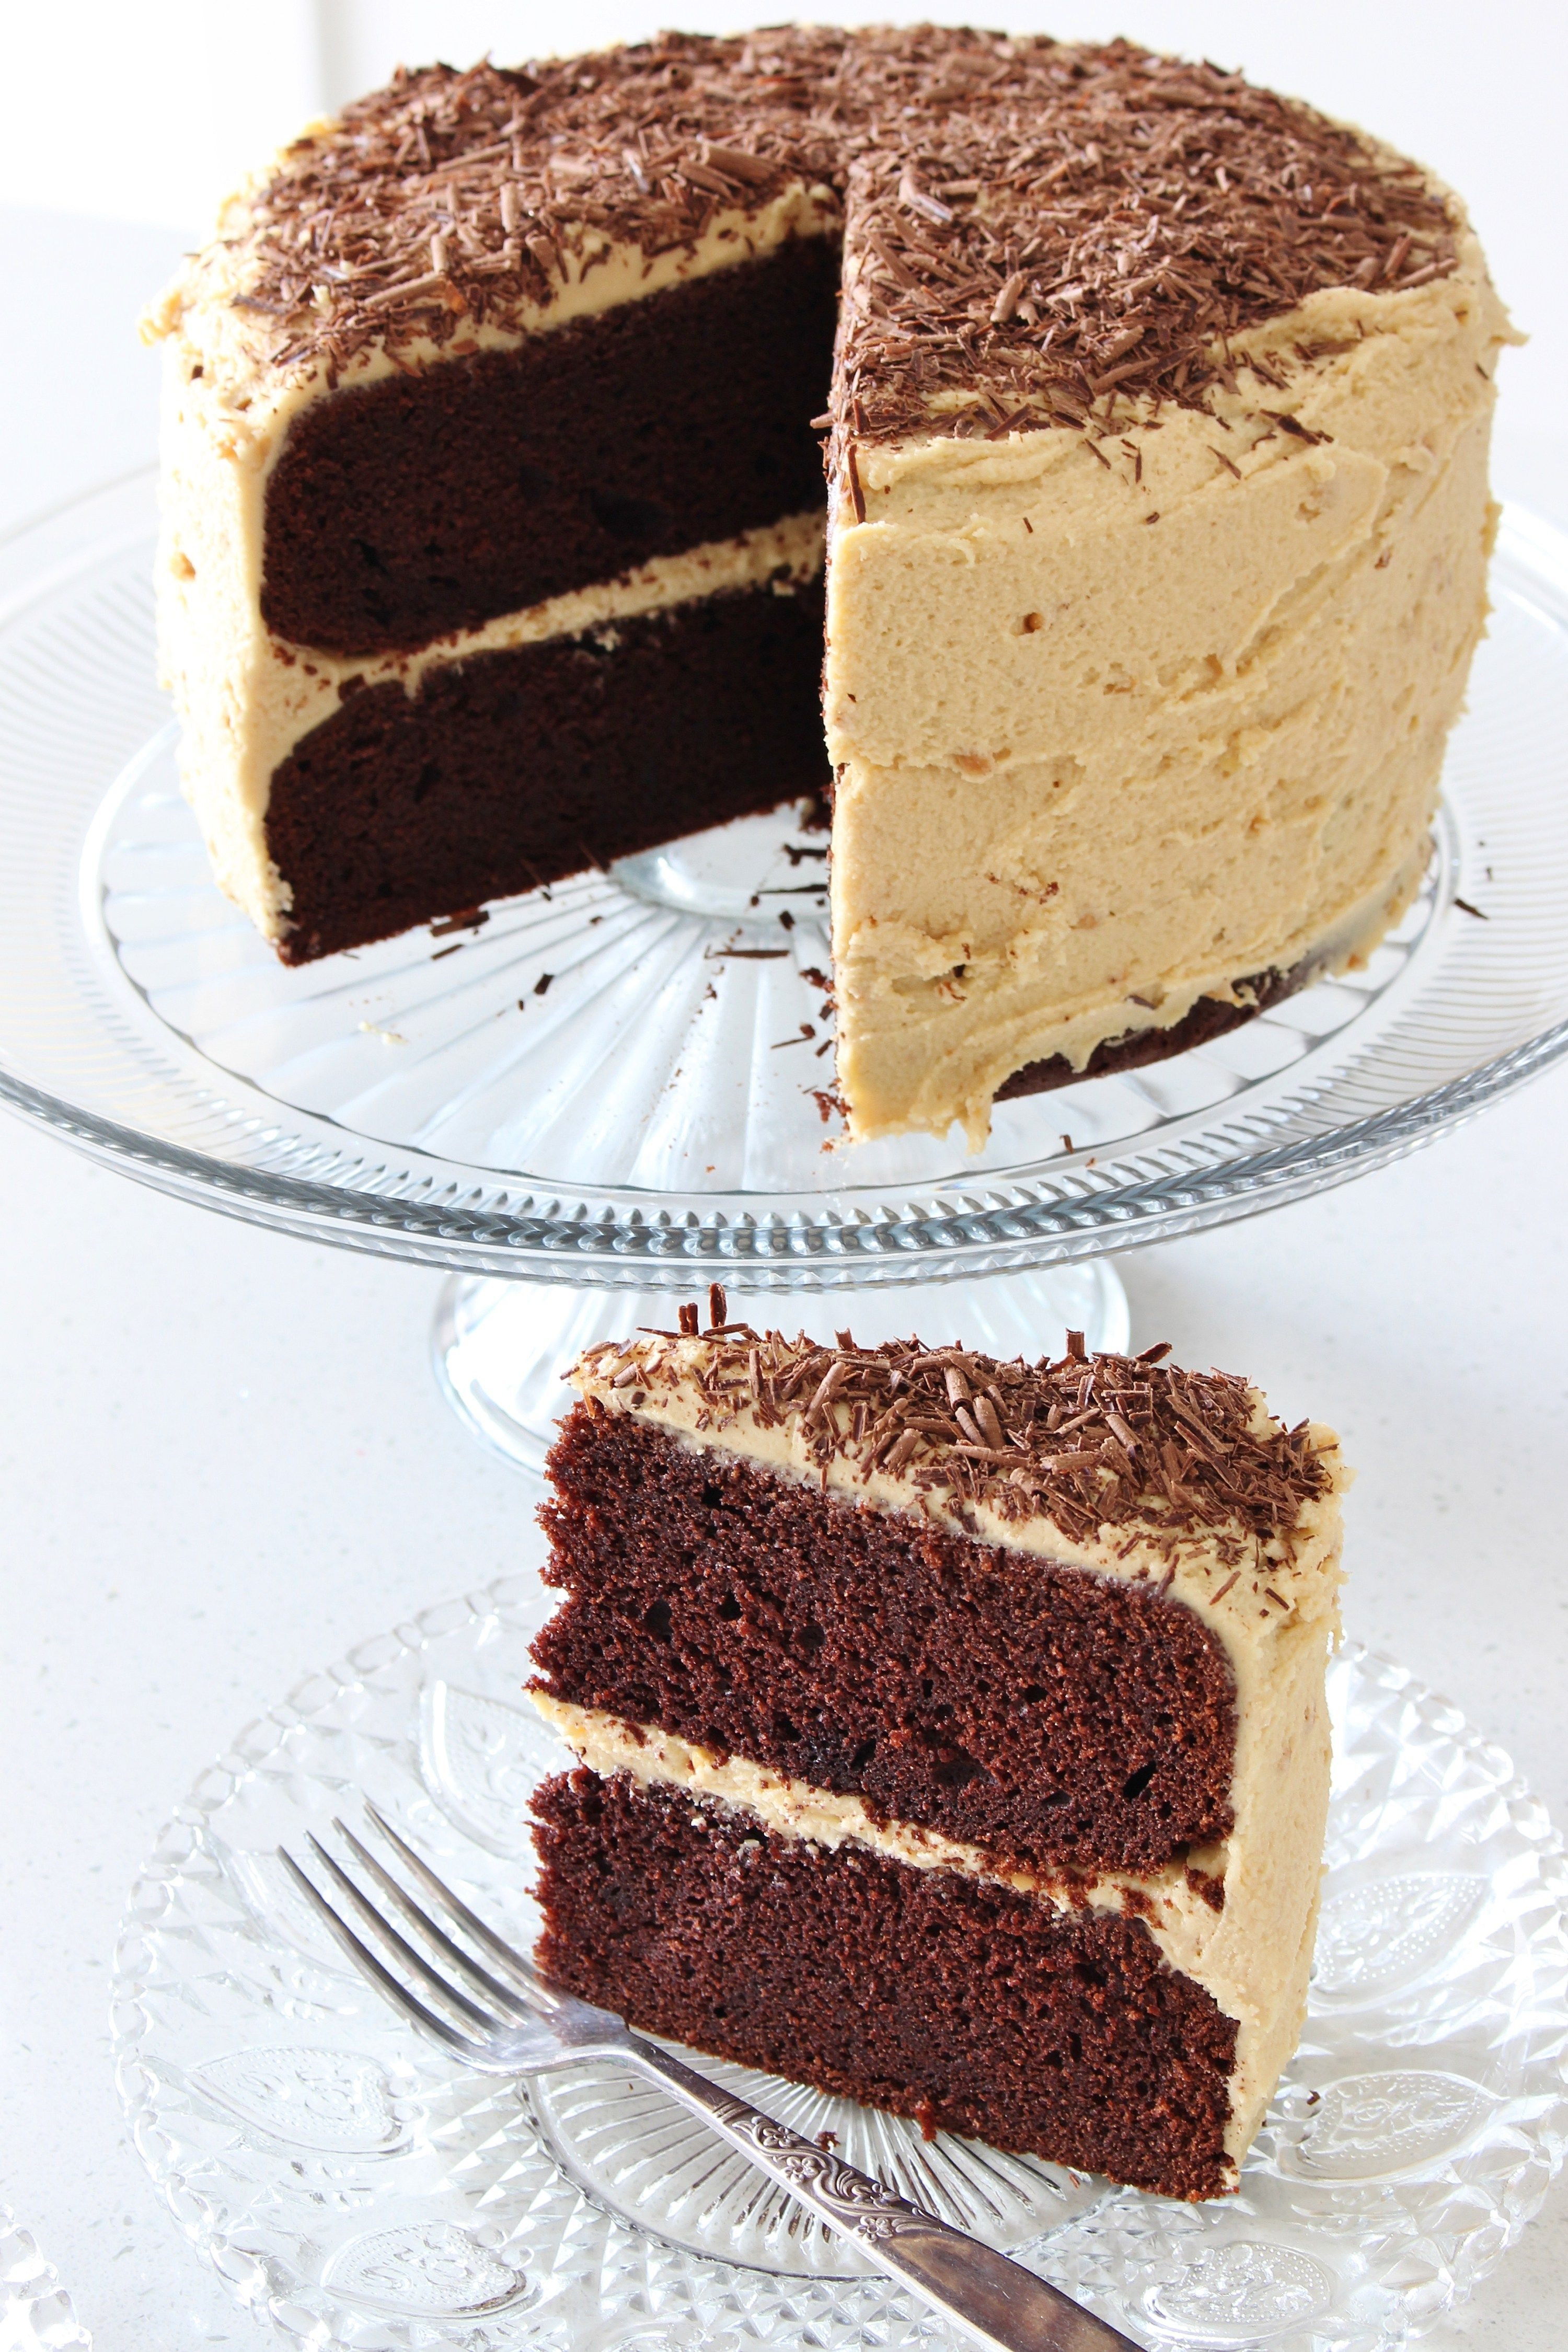 Chocolate Layer Cake With Peanut Butter Frosting Cake Delicious